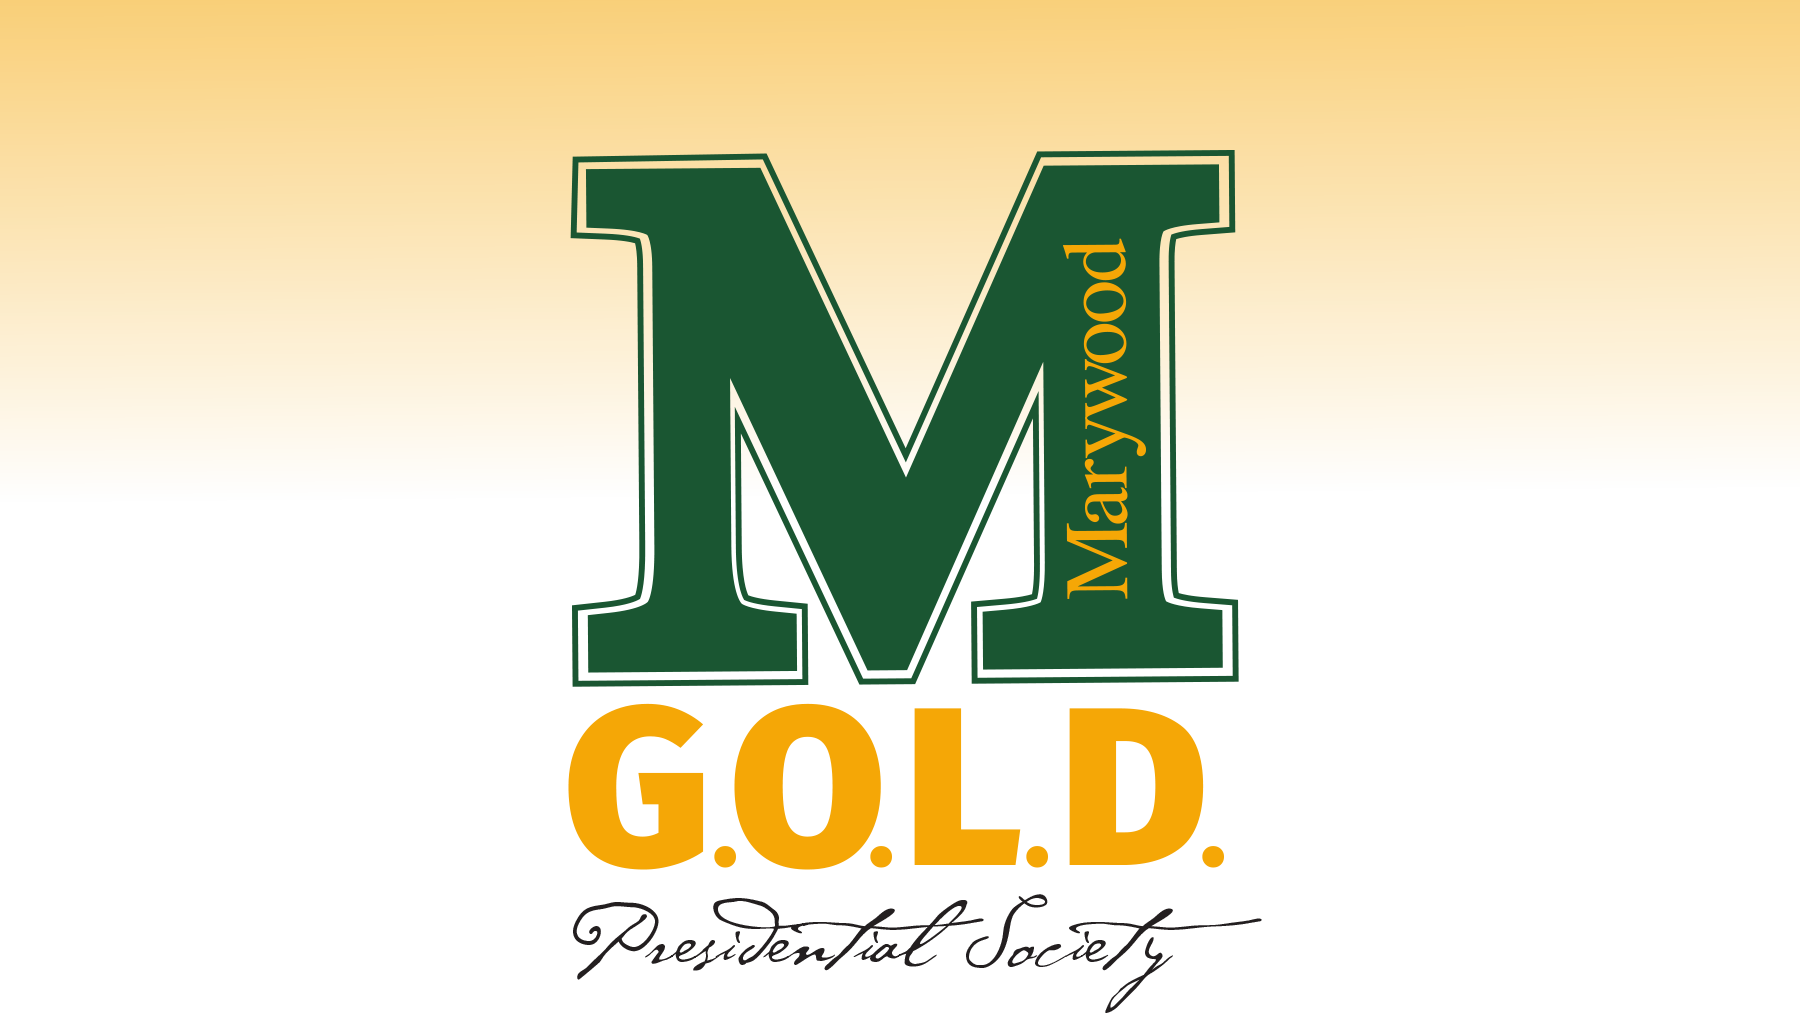 Marywood University - G.O.L.D. Presidential Society